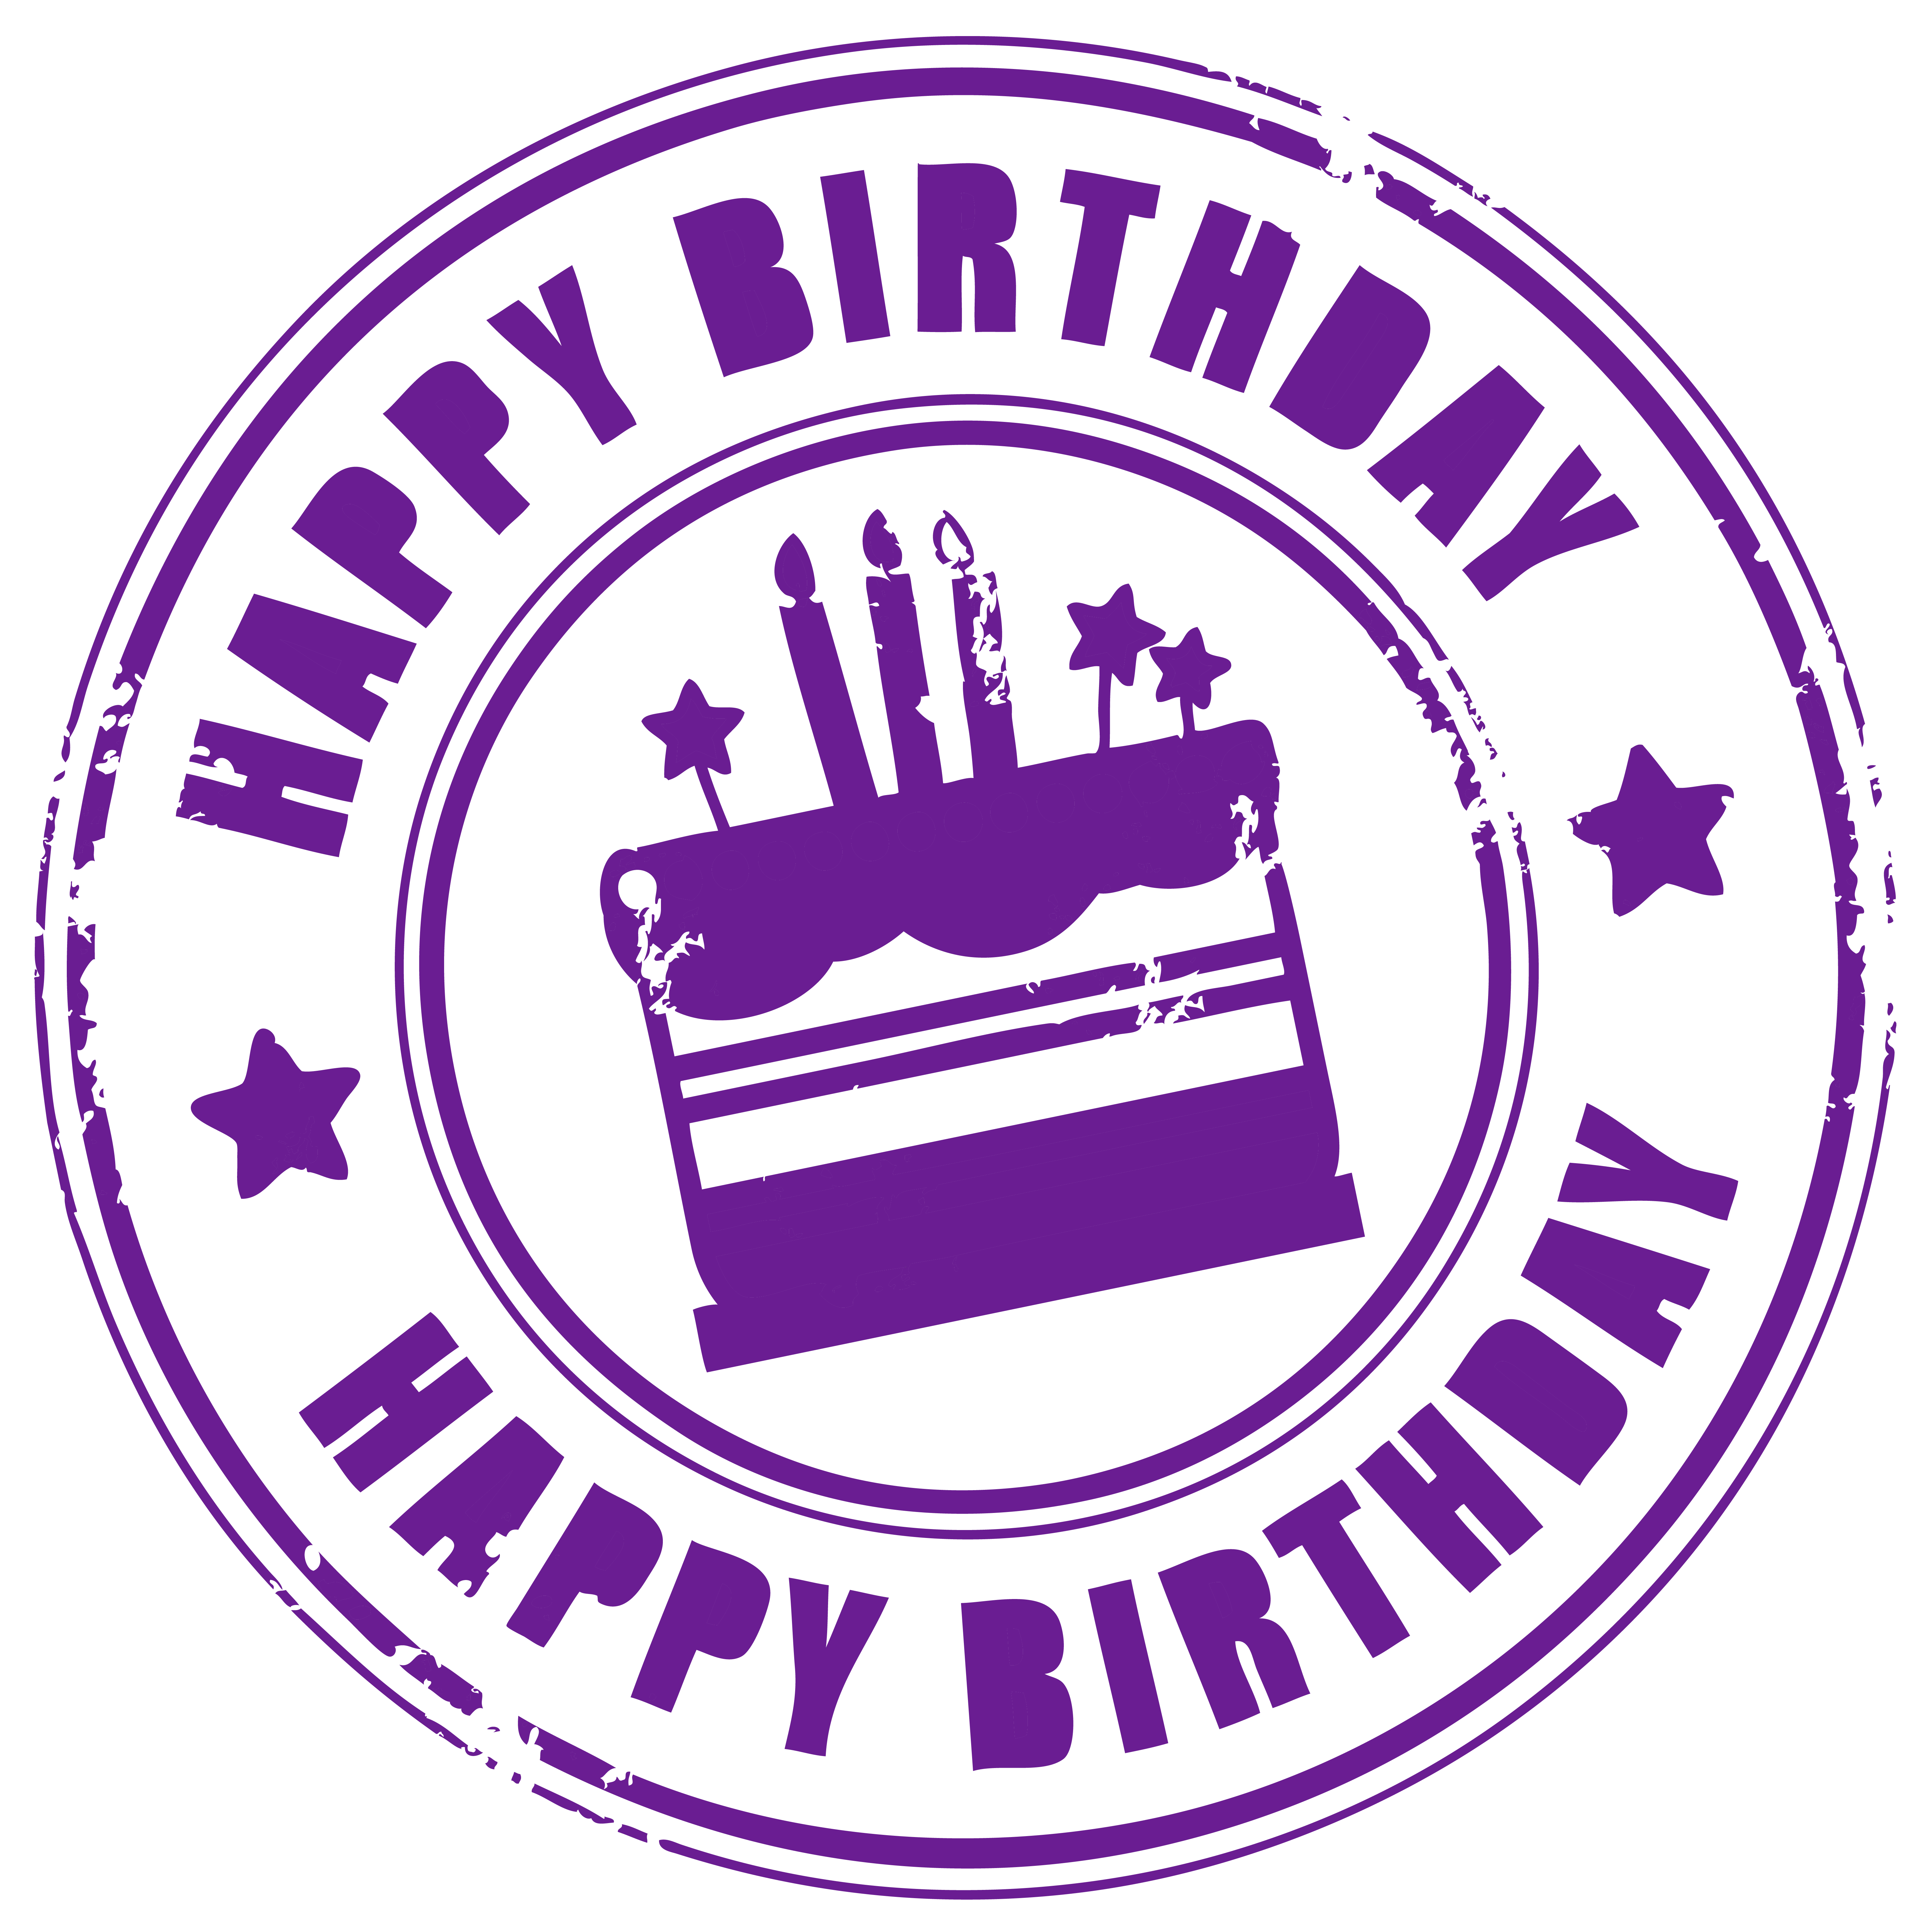 svg download Happy birthday png picture. Stamp clipart